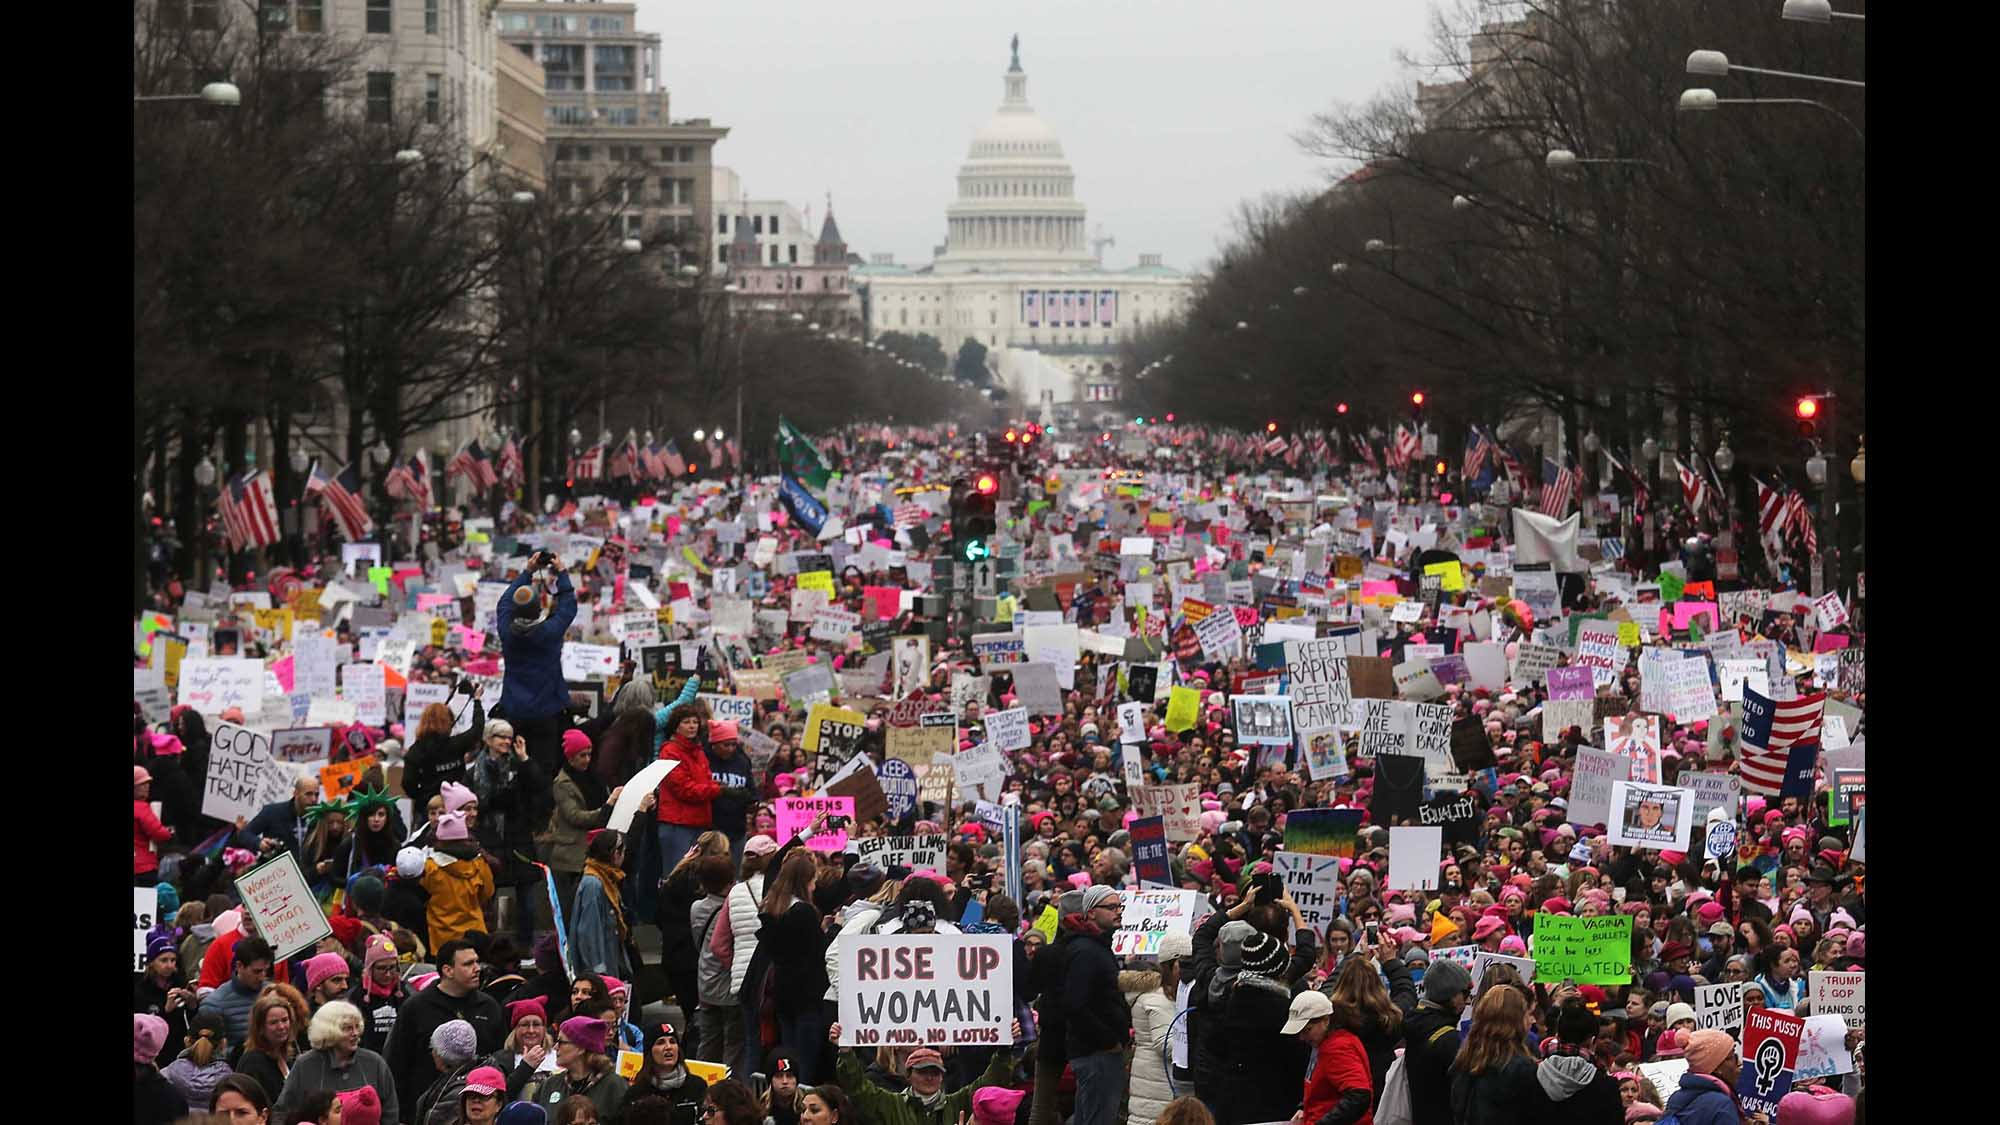 National Archives apologizes and removes altered photo of 2017 Women's March: 'We made a mistake'